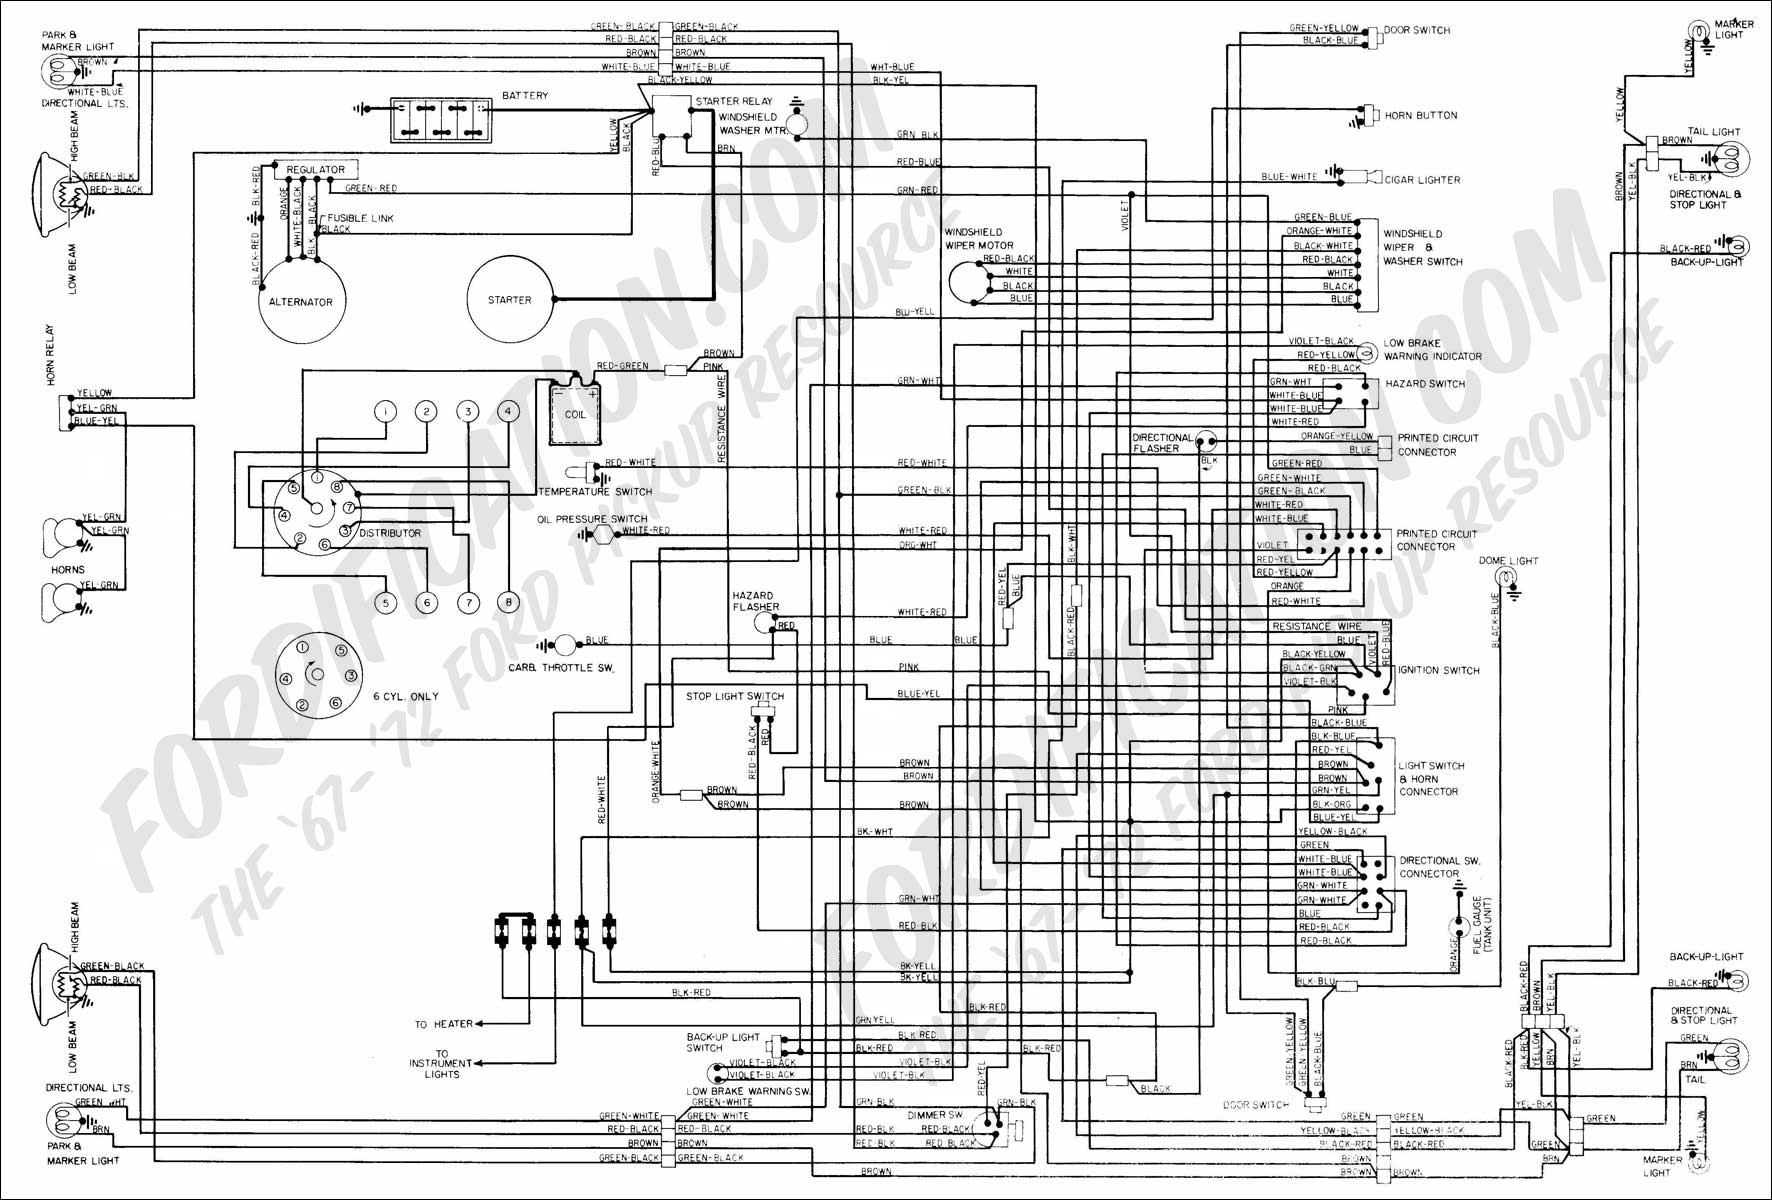 f350 wiring diagram detailed schematics diagram rh keyplusrubber com 1976 Ford Alternator Wiring Diagram Ford 3G Alternator Diagram